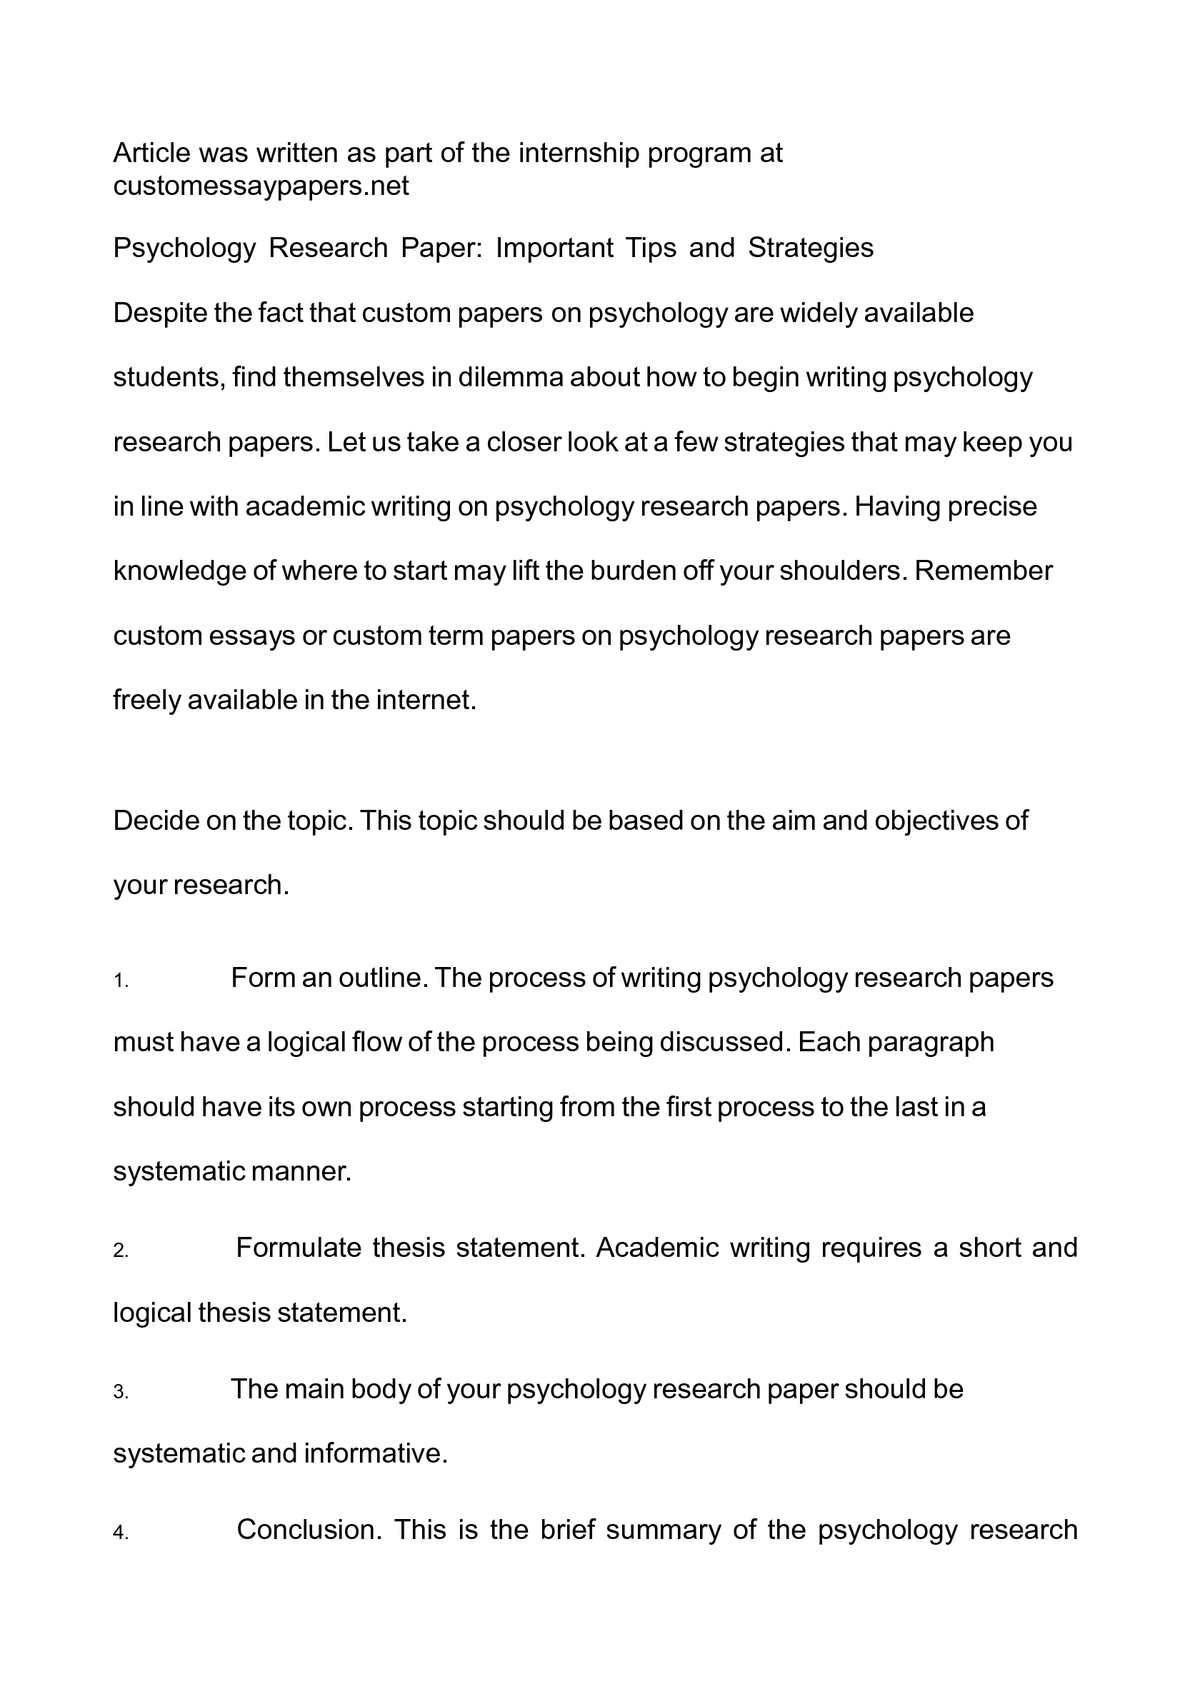 013 P1 Research Paper Sensational Psychology Outline Apa Abstract Full